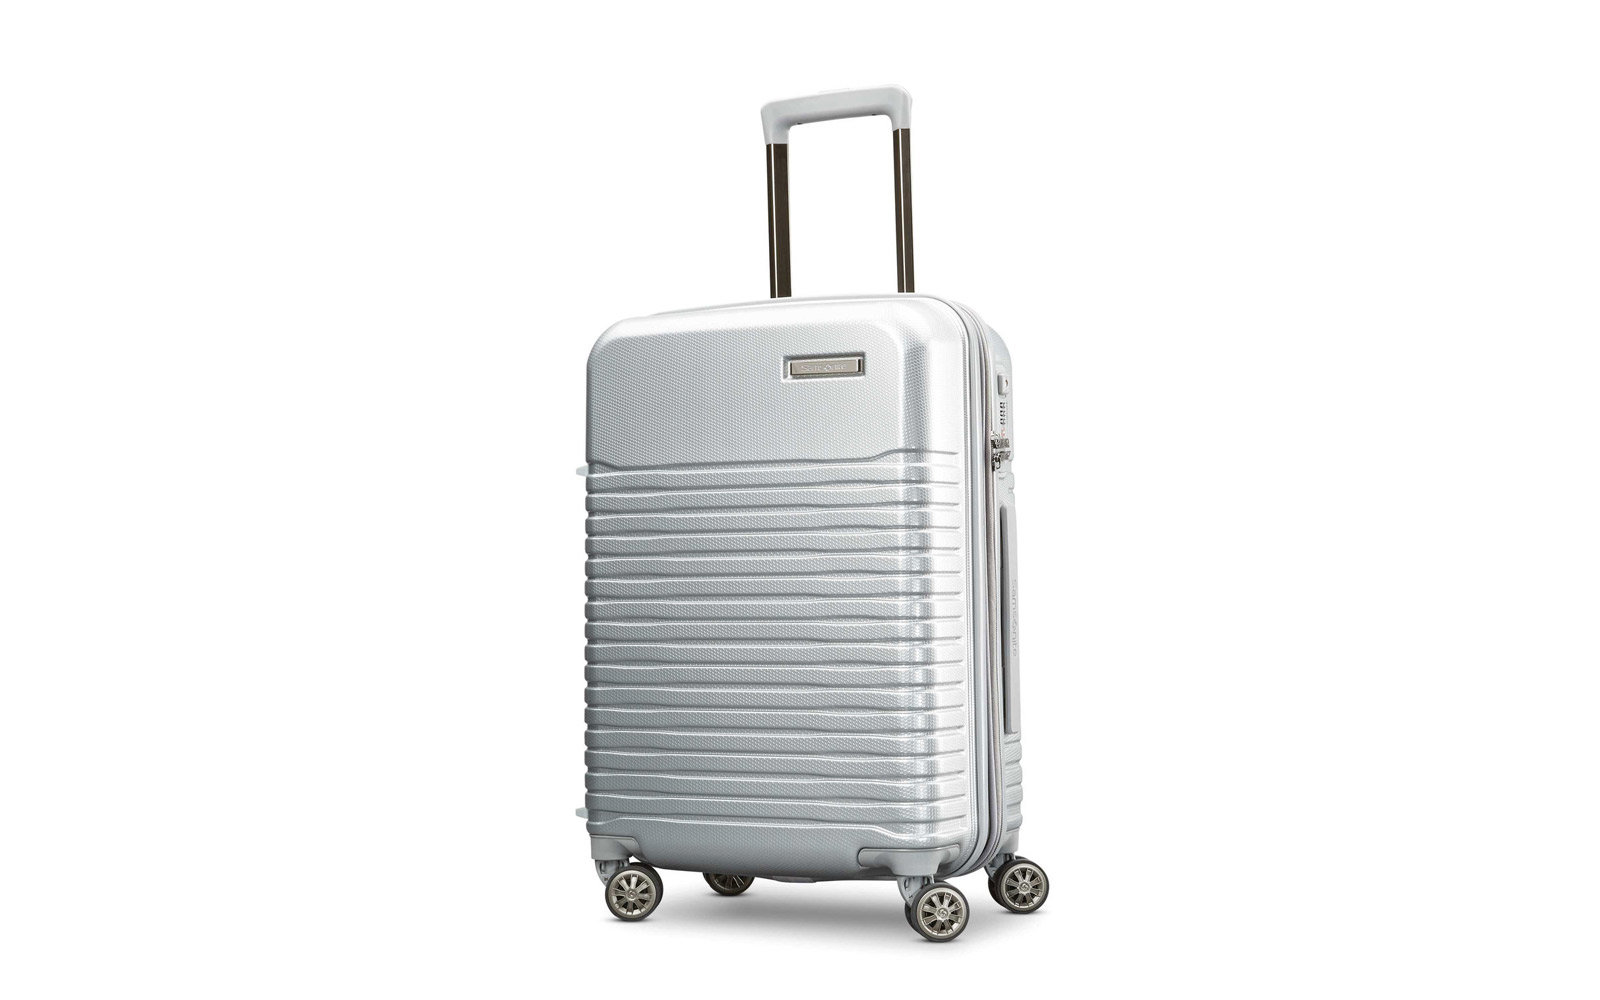 The Best Carry On Luggage According To Travel Editors